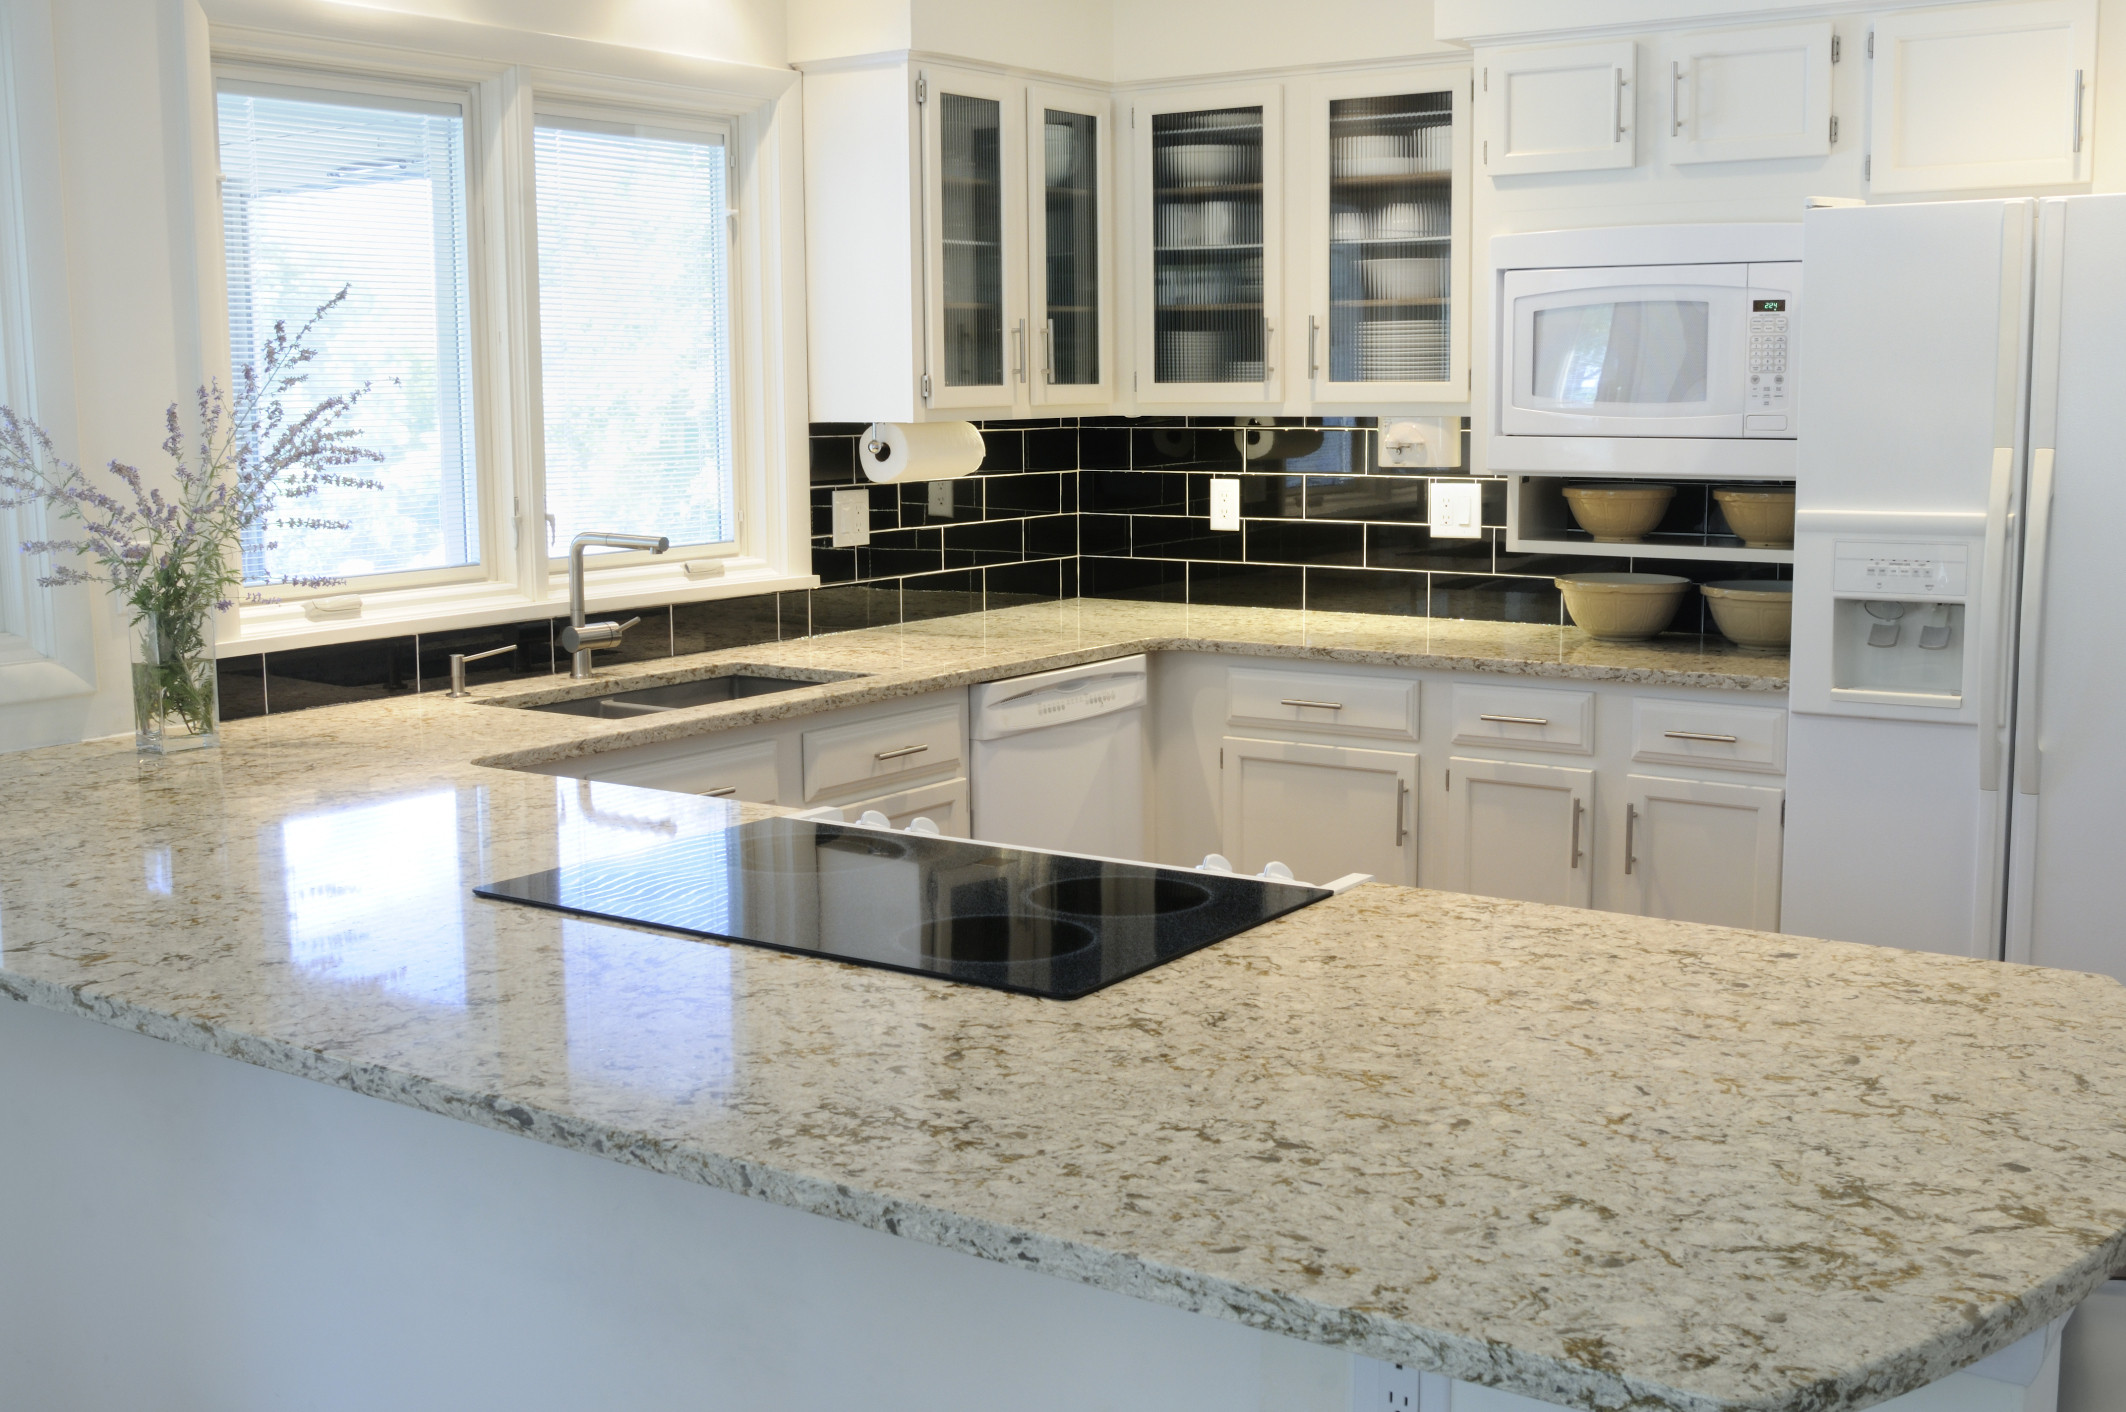 10 Reasons To Let Go Of The Granite Obsession Already HuffPost